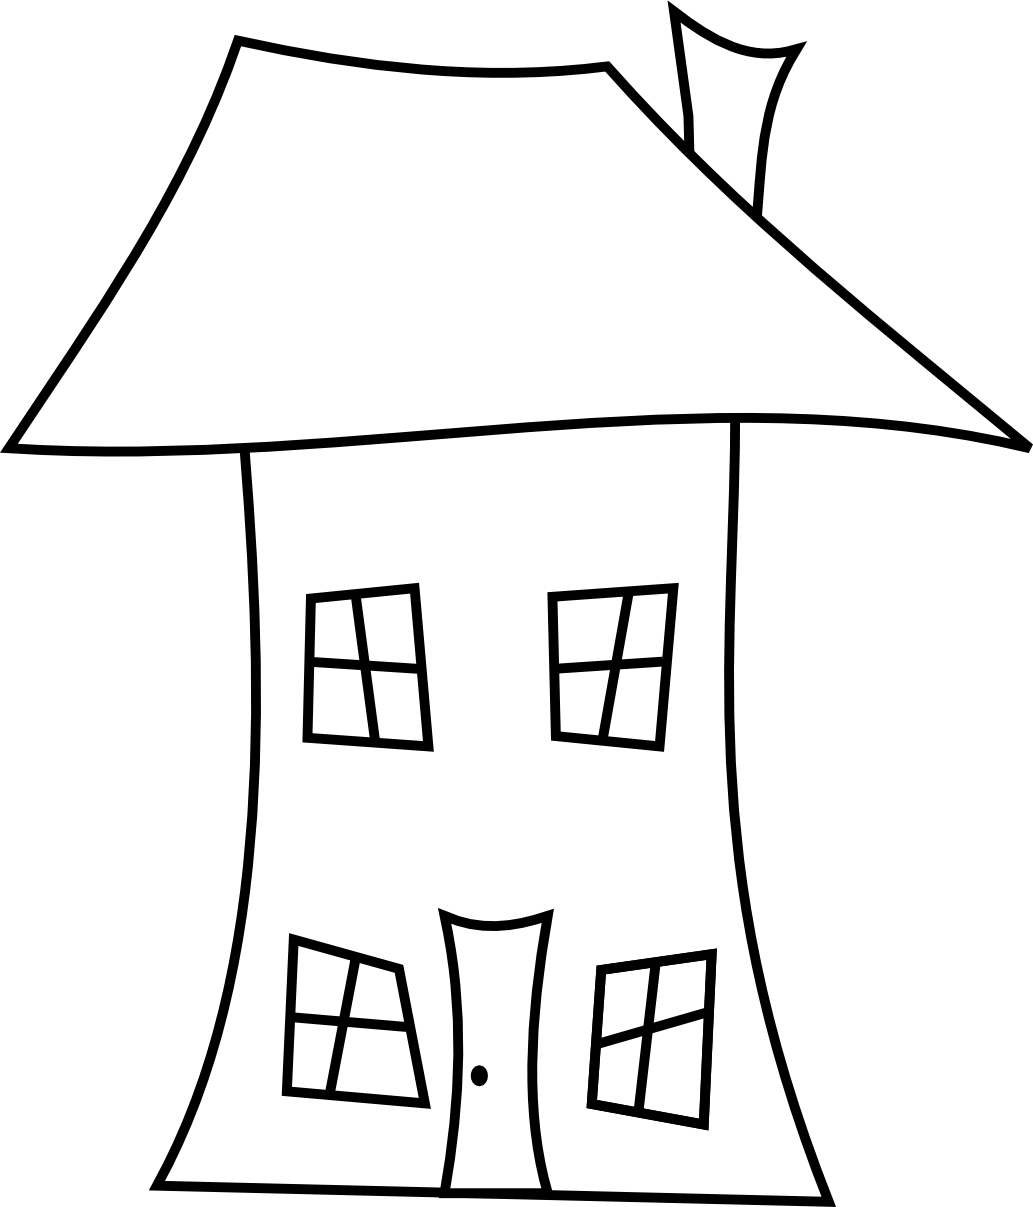 Line Art Images Of Houses : House line drawing clipart best